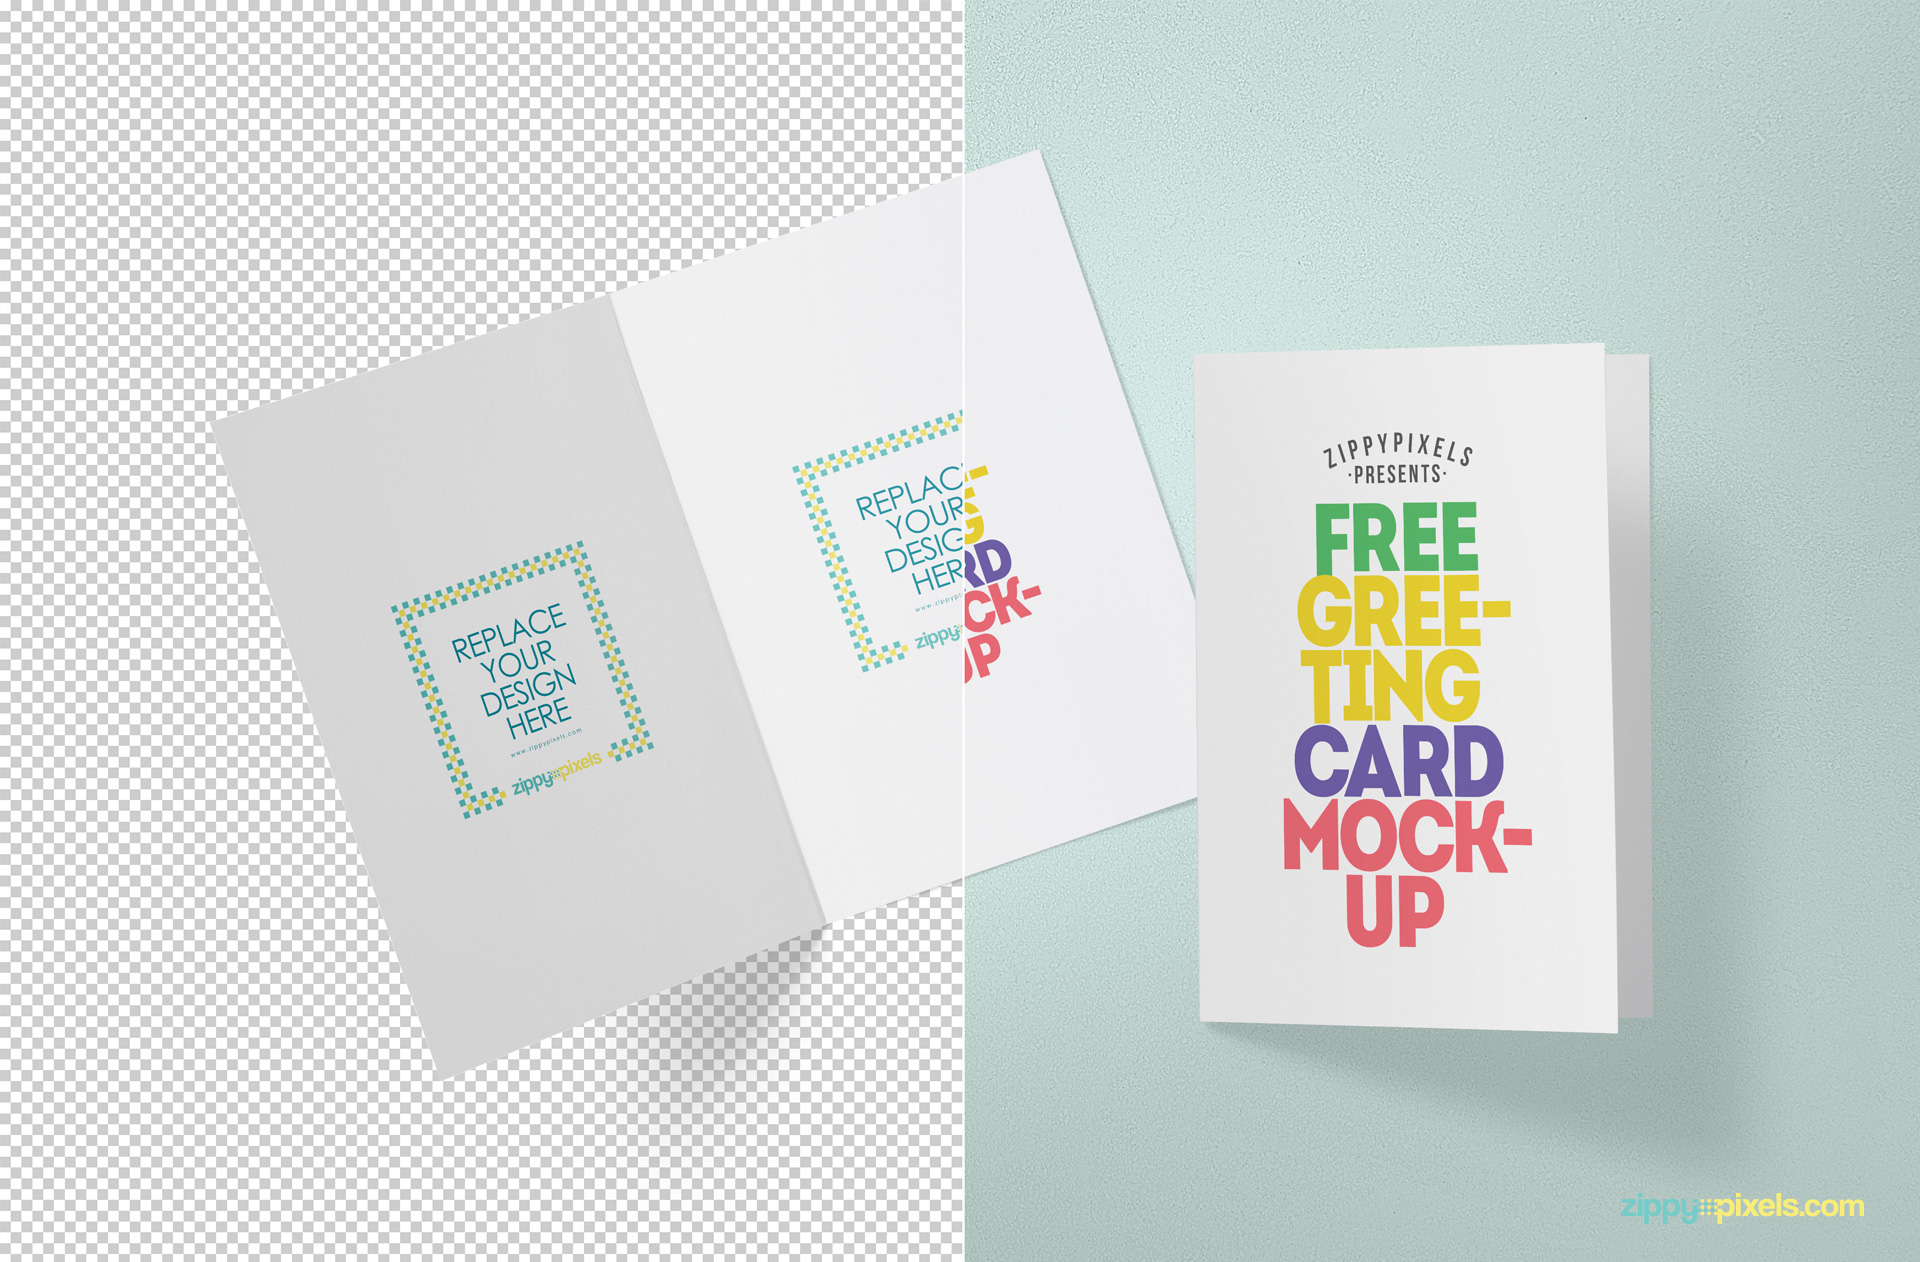 Free greeting card mockup zippypixels free invitation card mockup m4hsunfo